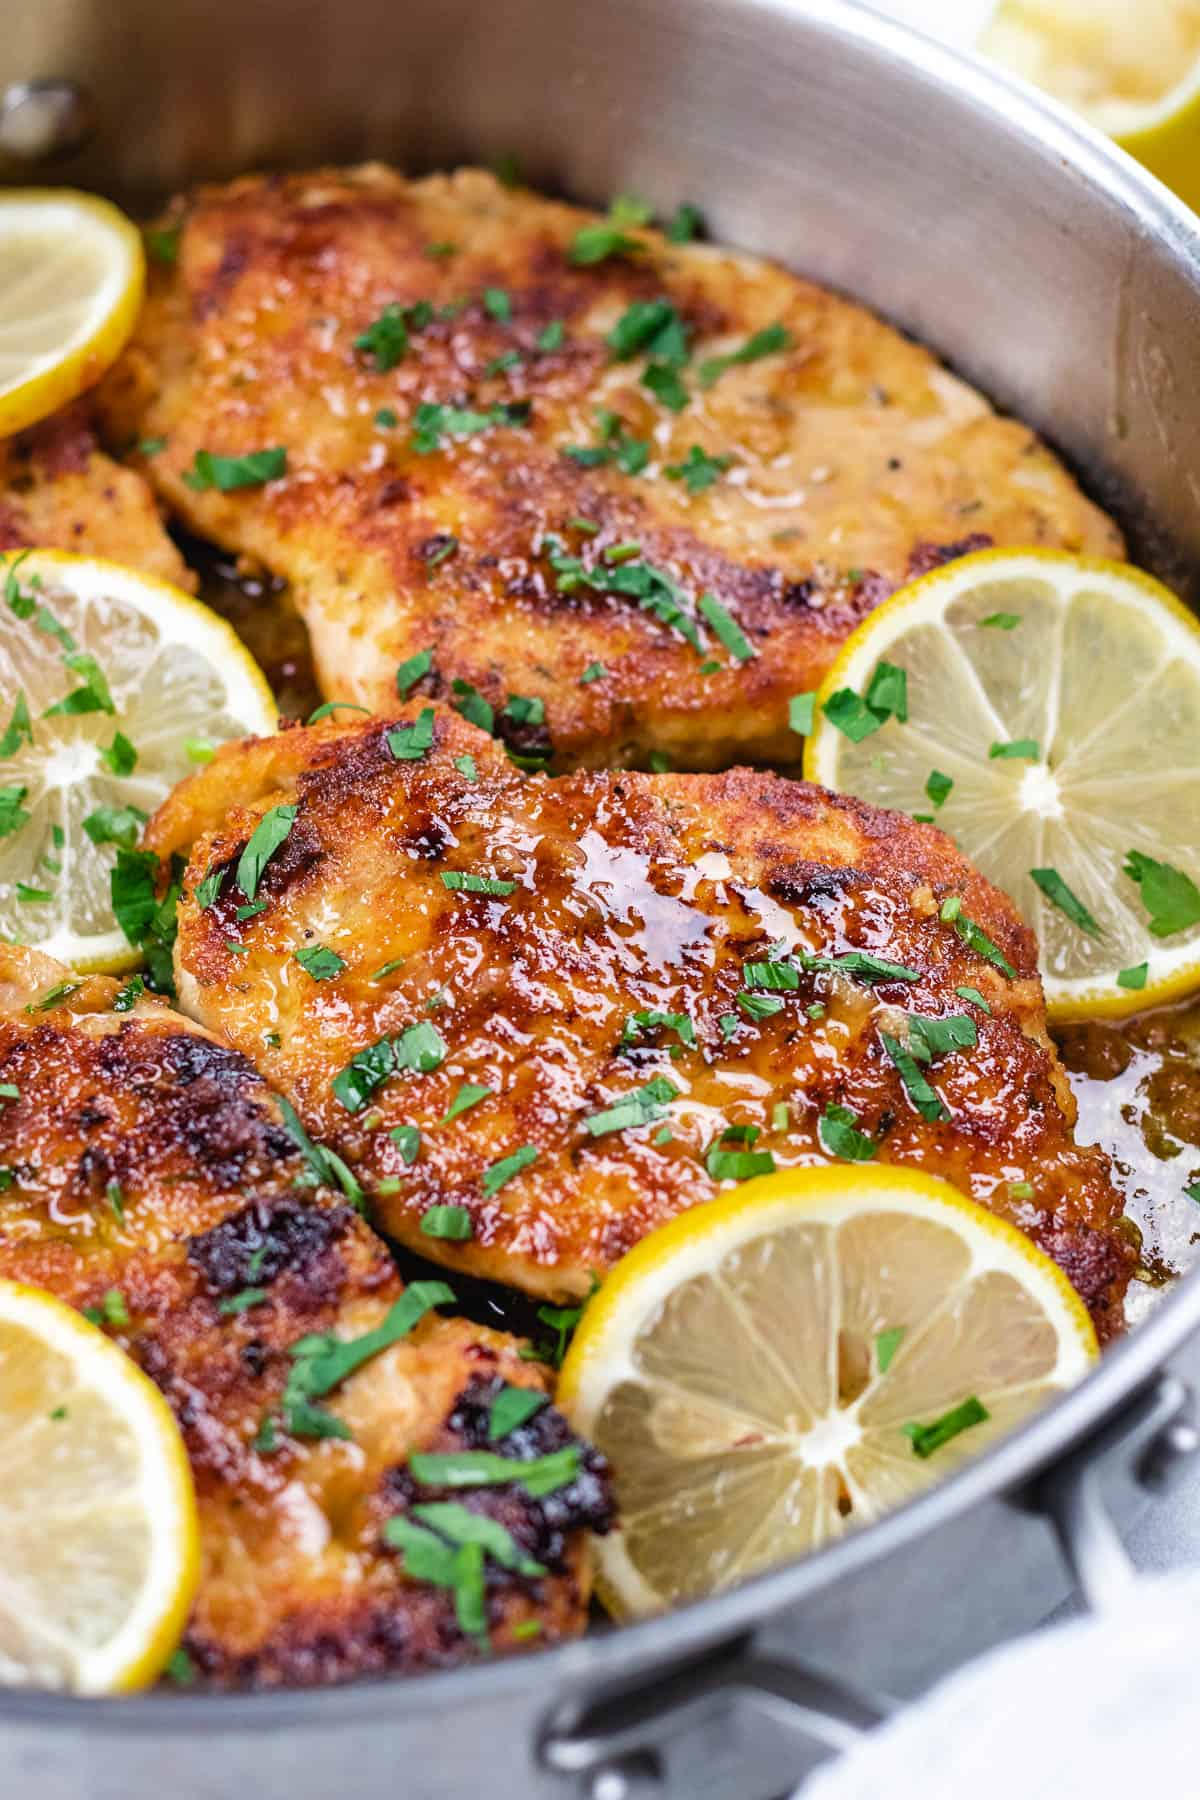 Chicken breasts with lemon sauce in a skillet with lemon slices.